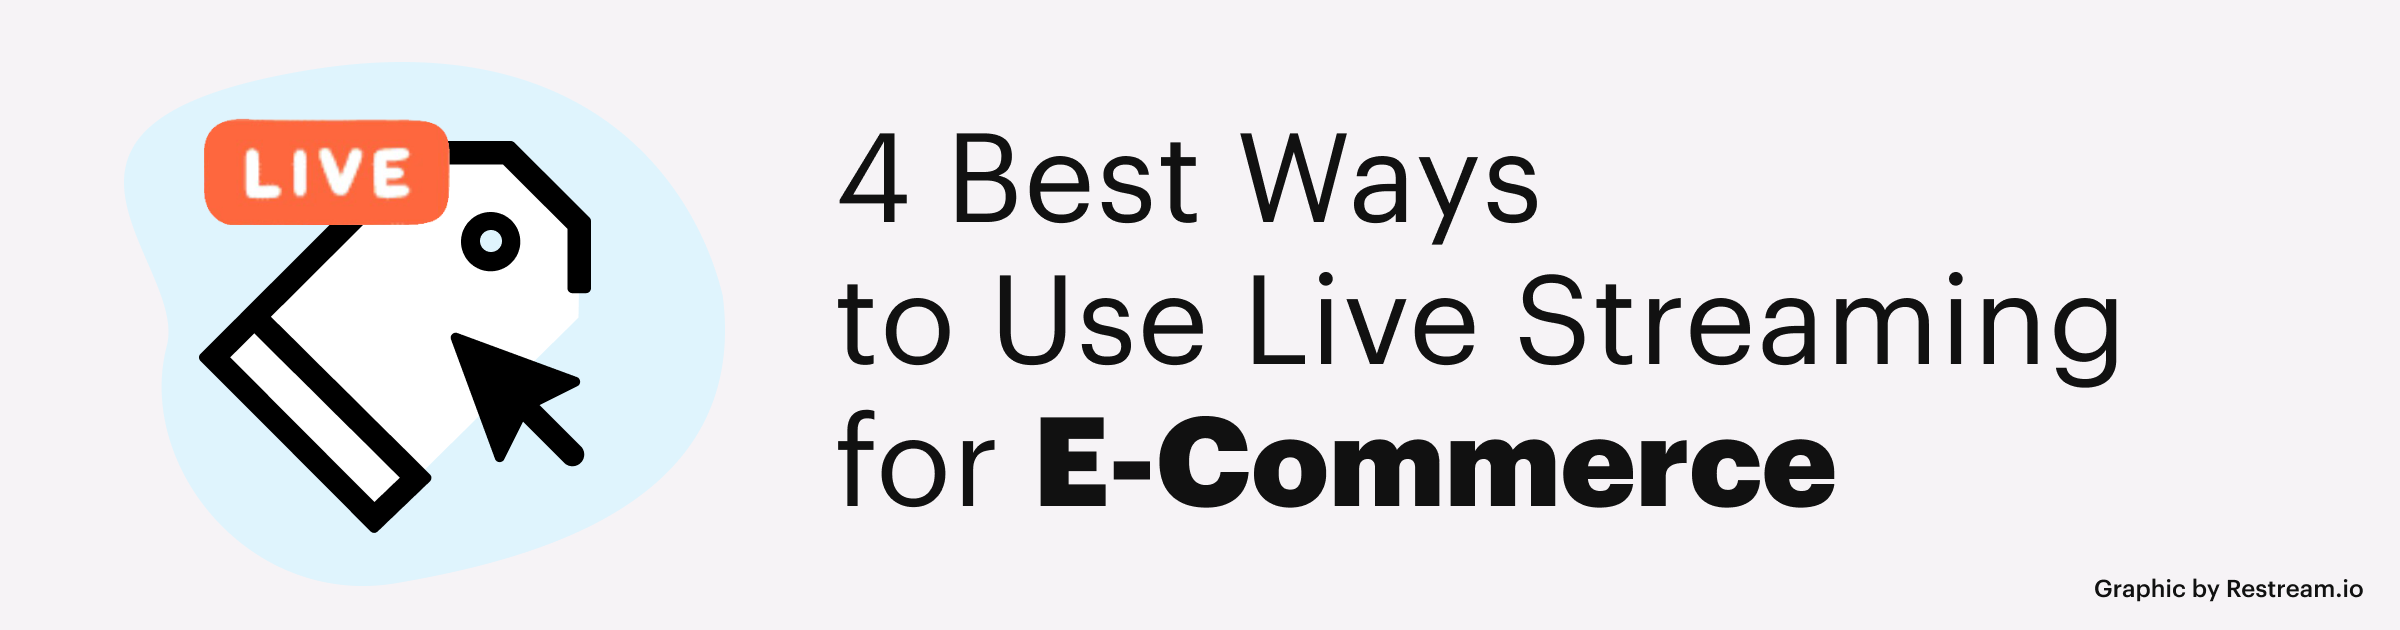 4 Best Ways to Use Live Streaming for E-Commerce